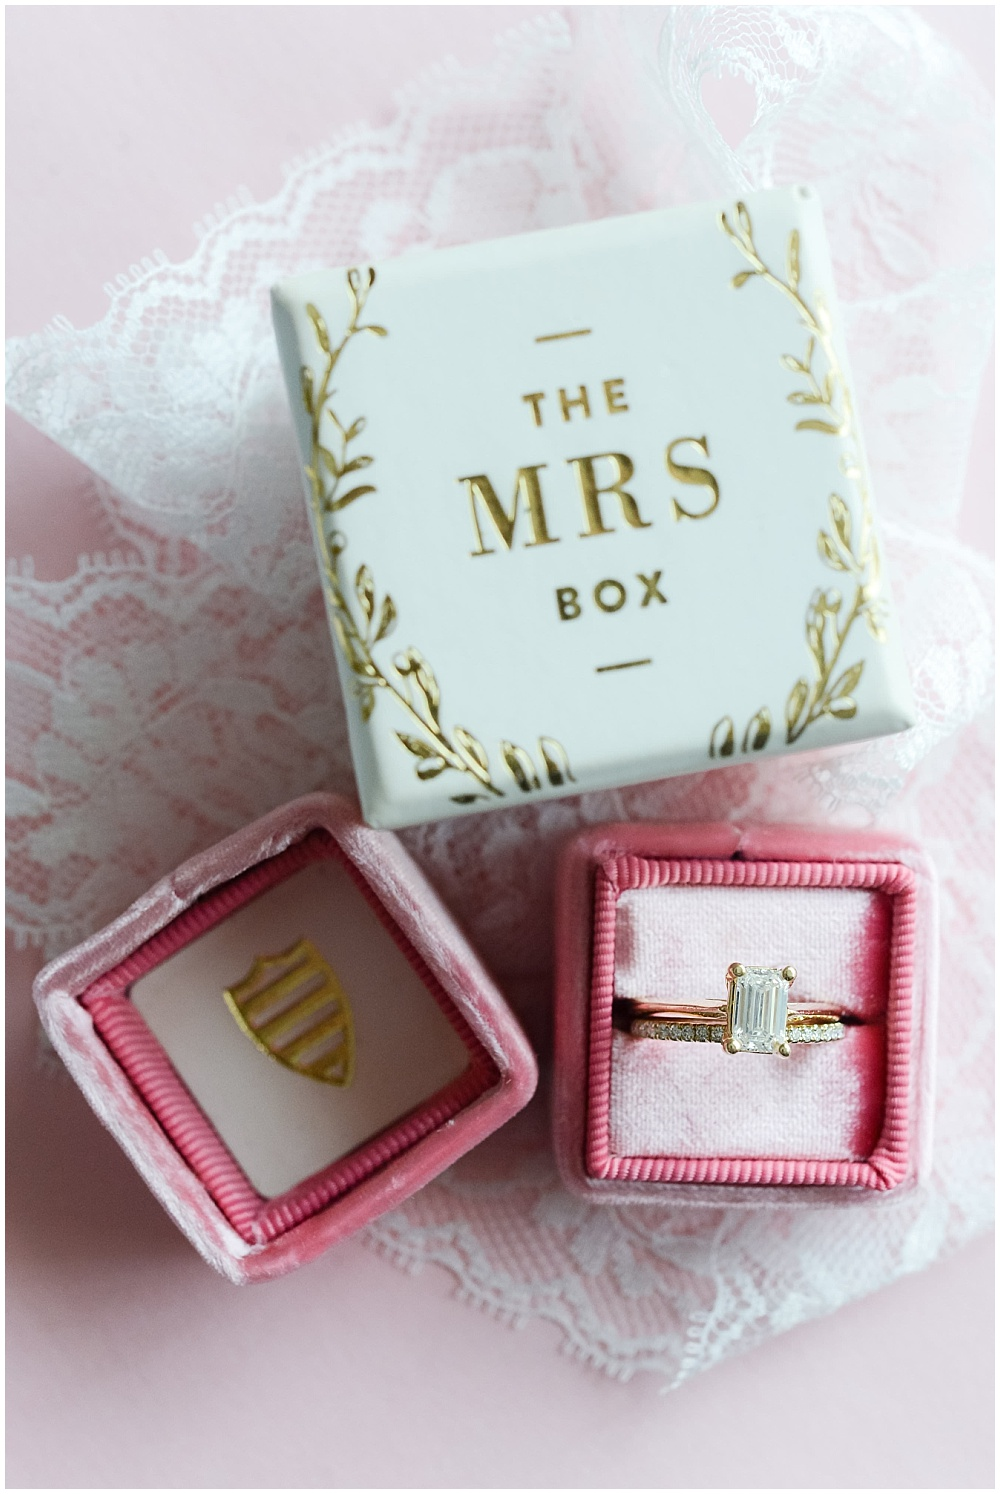 Wedding ring in a pink and gold The Mrs Box | Mustard Seed Gardens Wedding by Sara Ackermann Photography & Jessica Dum Wedding Coordination